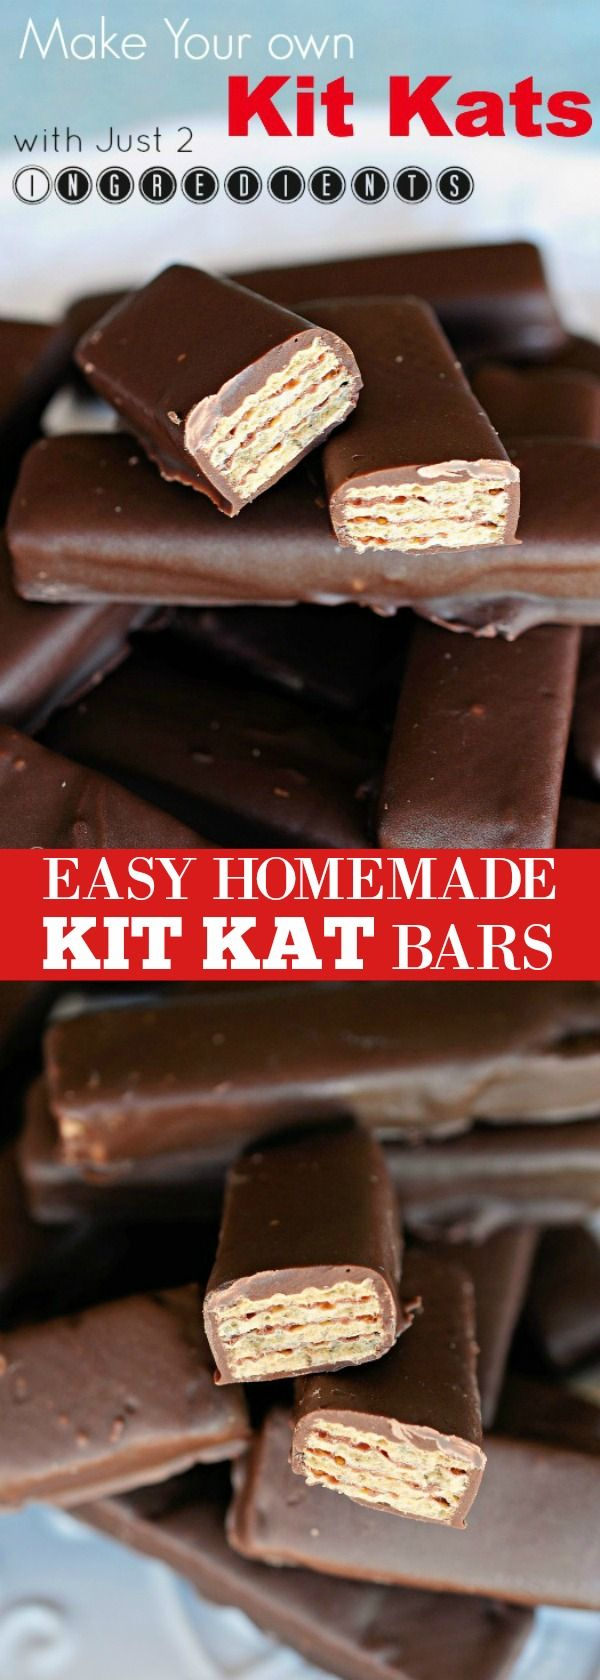 Two ingredients and about 5 minutes is all it takes to make these Easy Homemade Kit Kat Bars